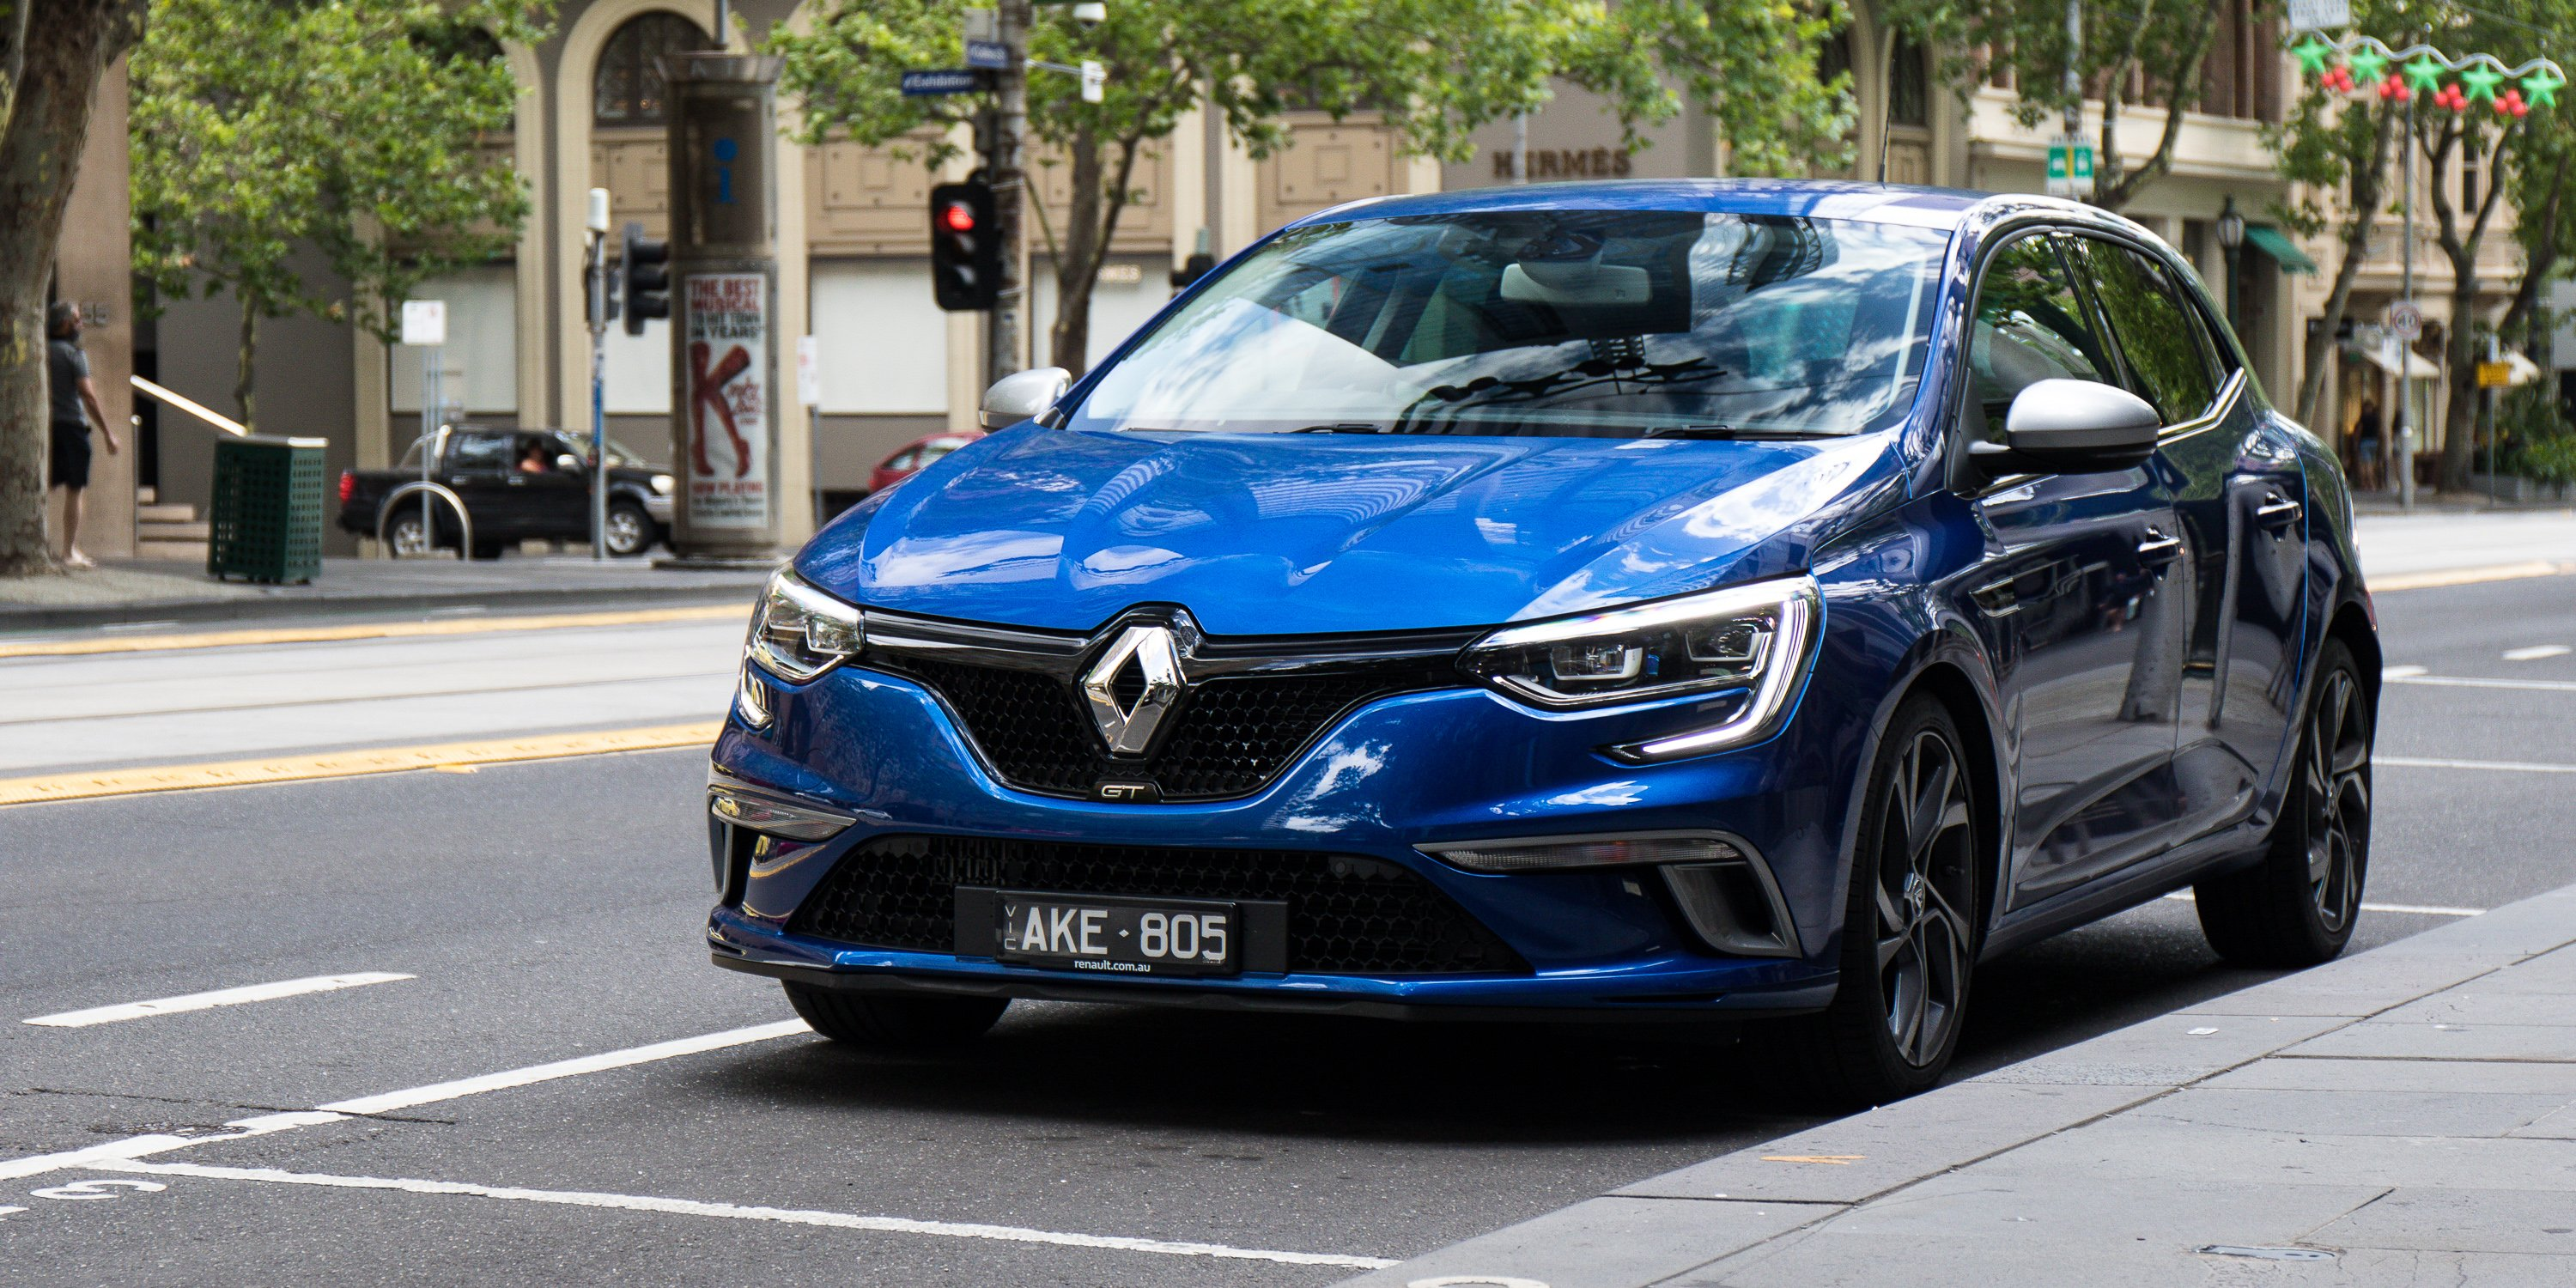 2017 Renault Megane GT review - photos | CarAdvice